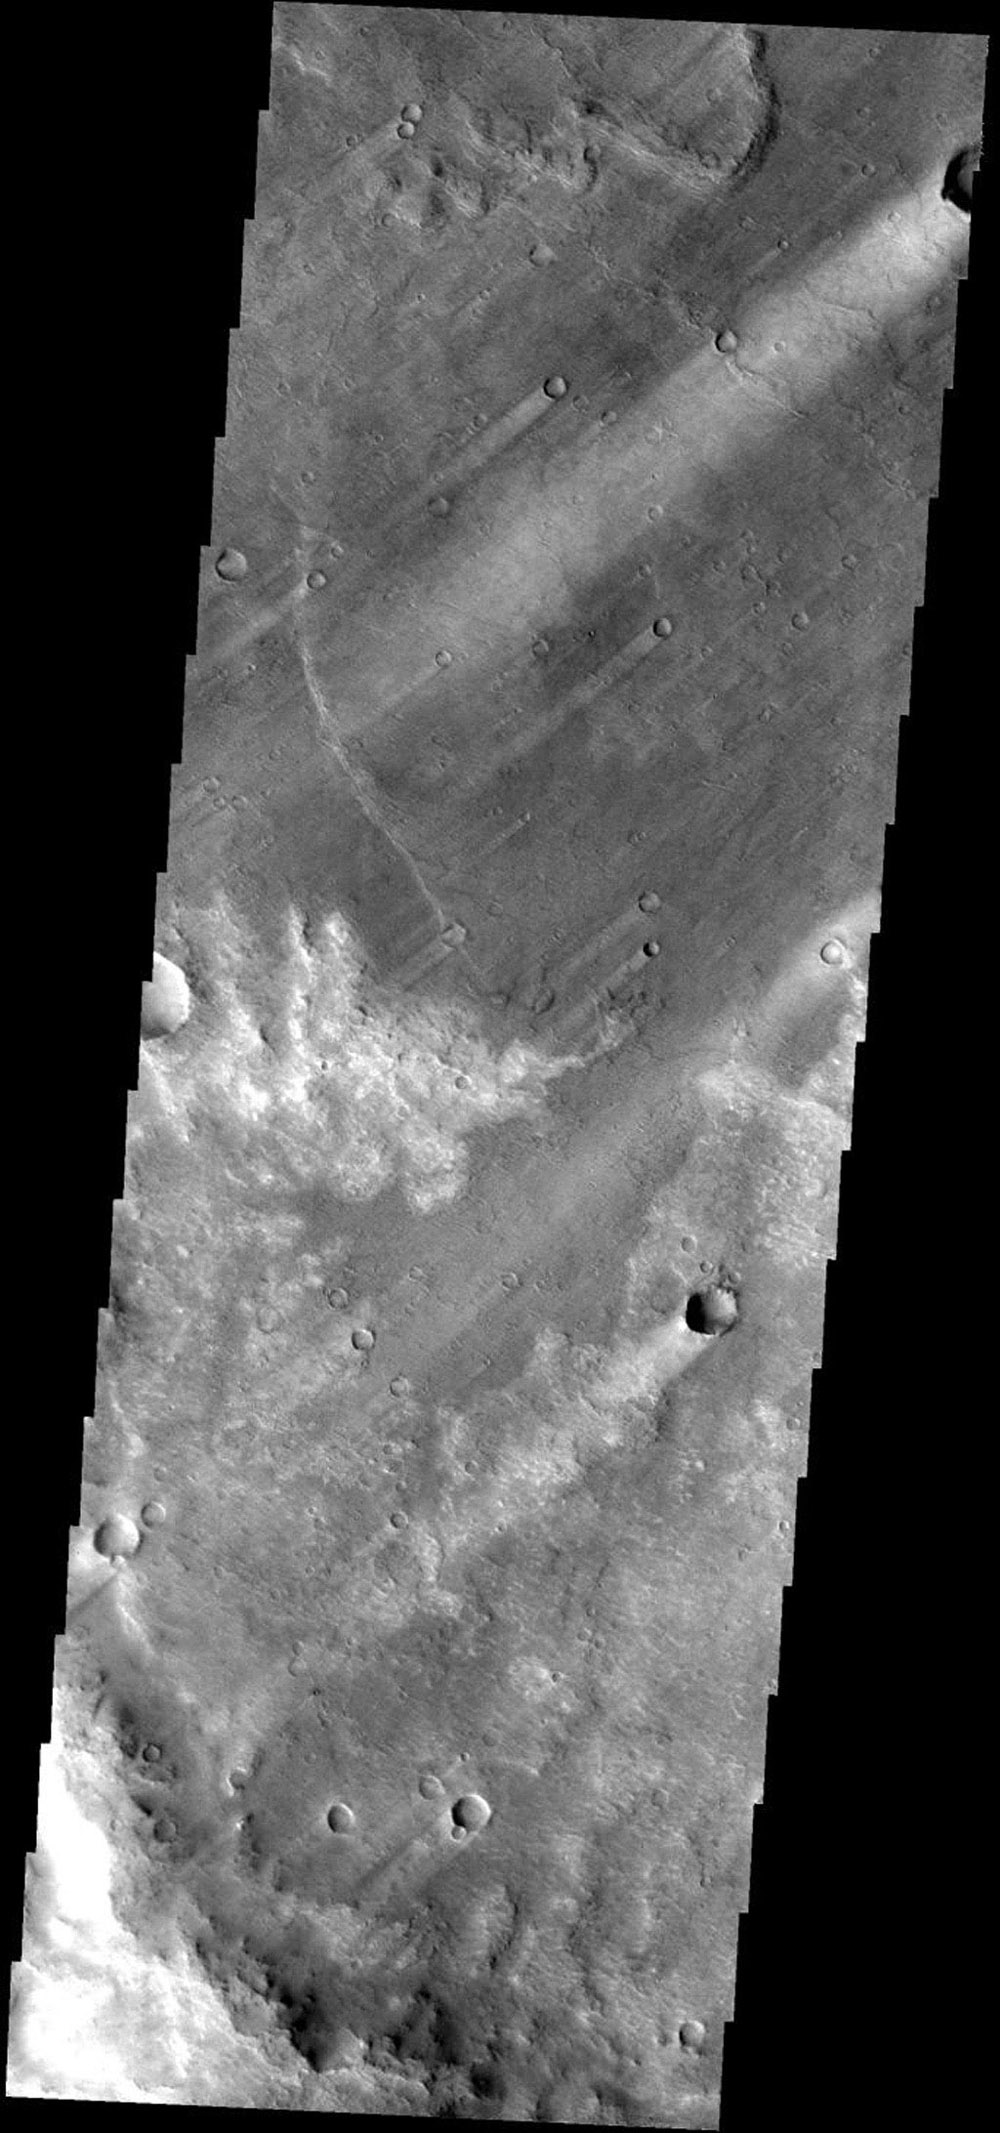 Windstreaks downwind of craters are a common feature in this region of Syrtis Planum on Mars as seen by NASA's Mars Odyssey spacecraft.